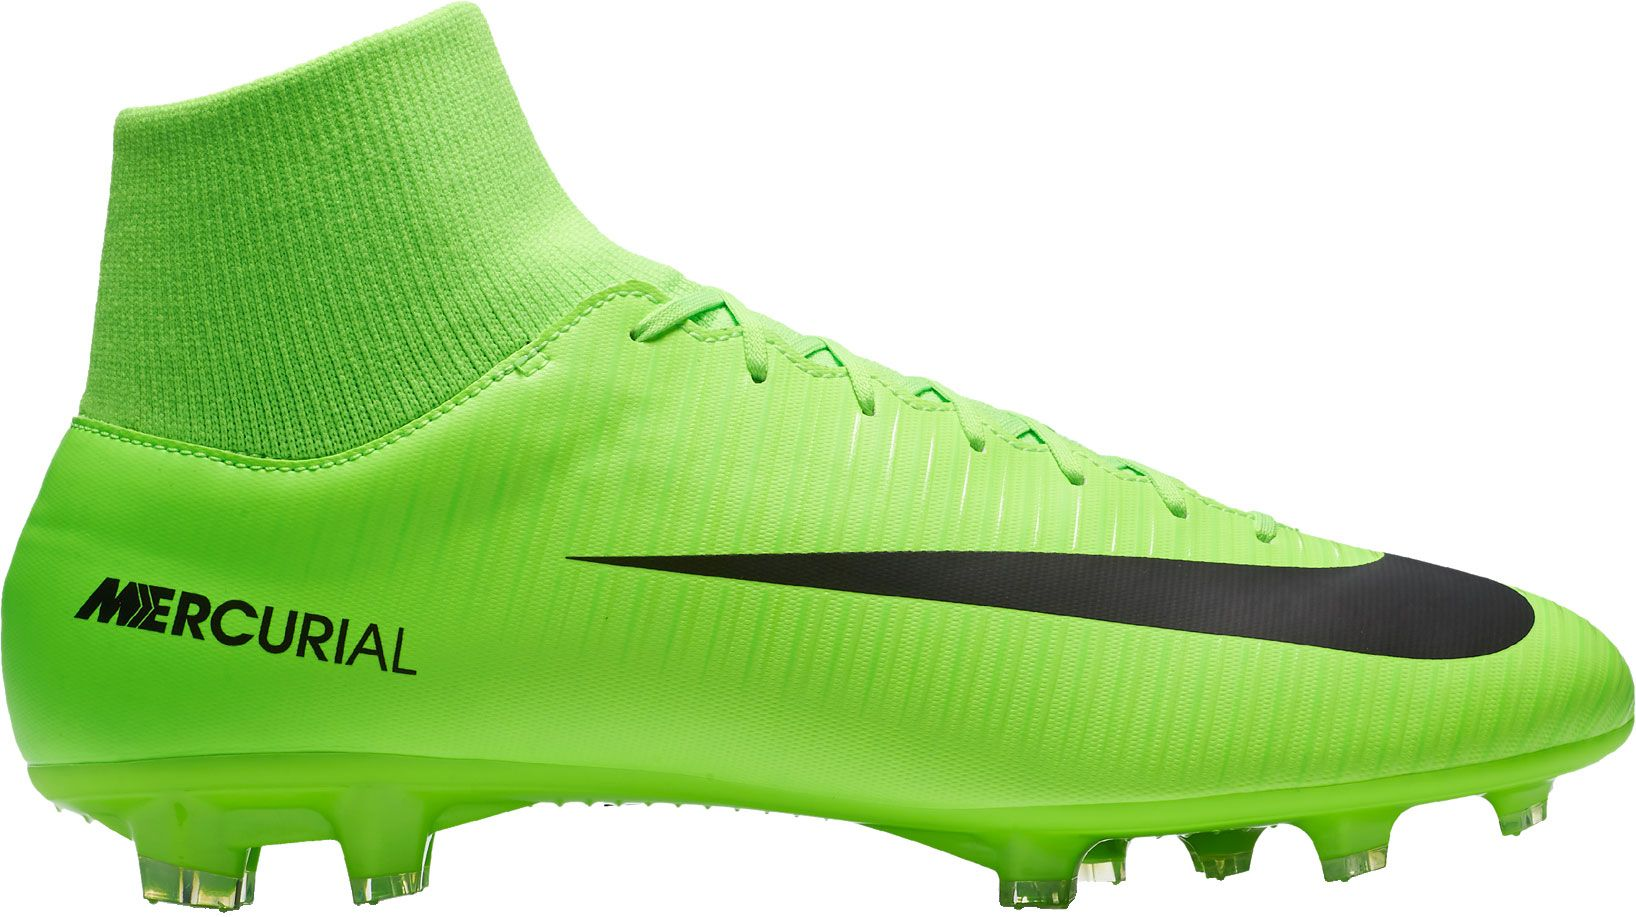 Nike Mercurial Victory VI Dynamic Fit FG Soccer Cleats, Men's, Size: 10.0, Green